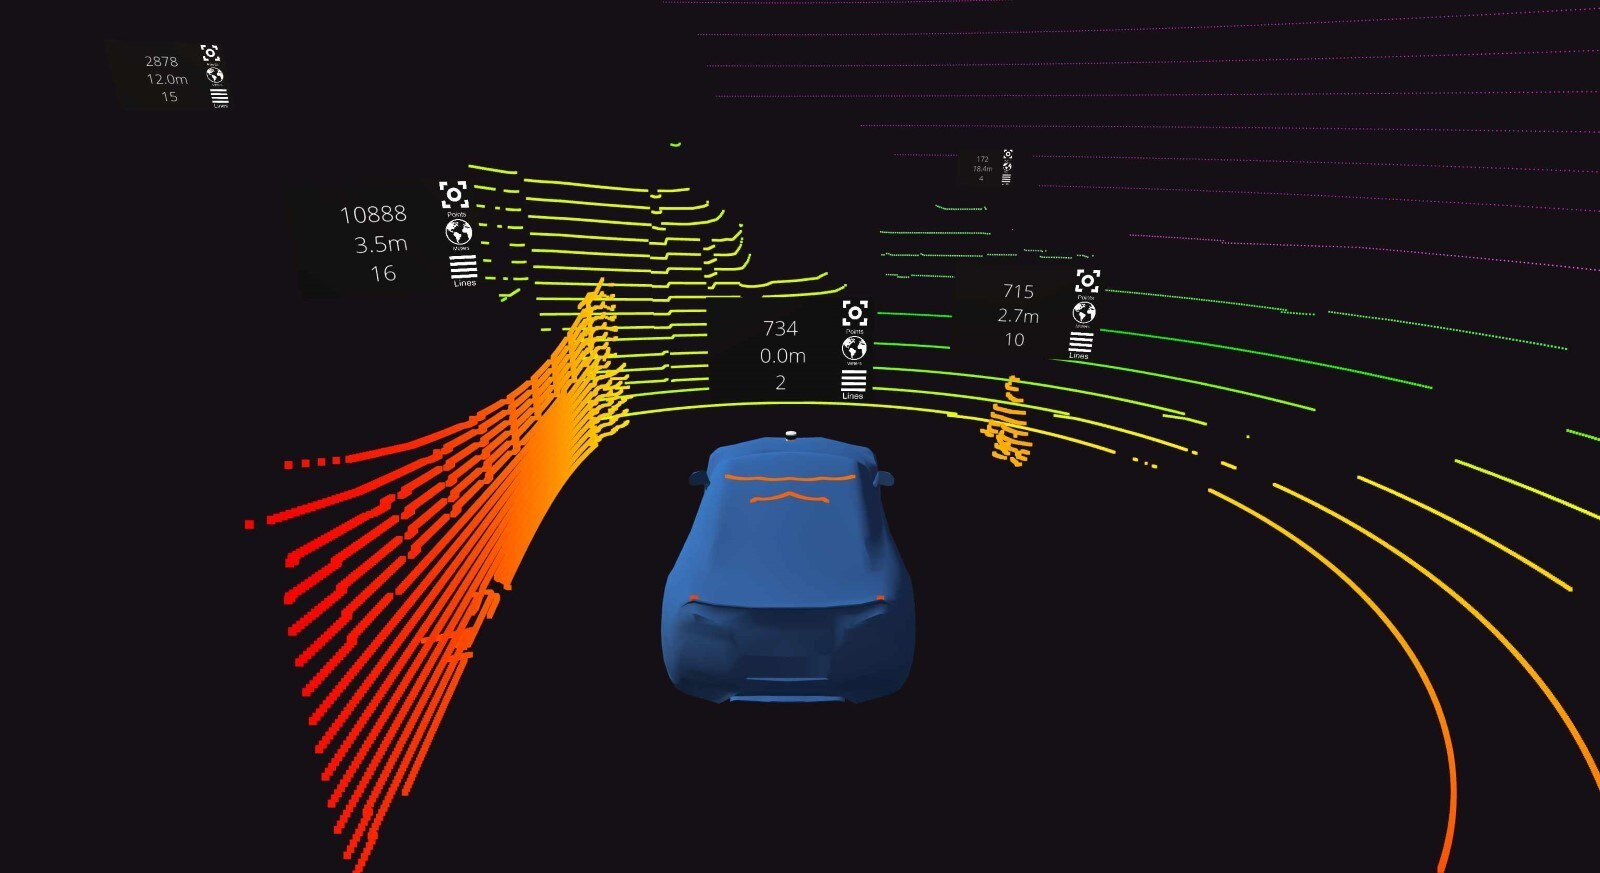 Lidar simulation, same blue car, same coloured circle as before this time the background is black rather than grey.